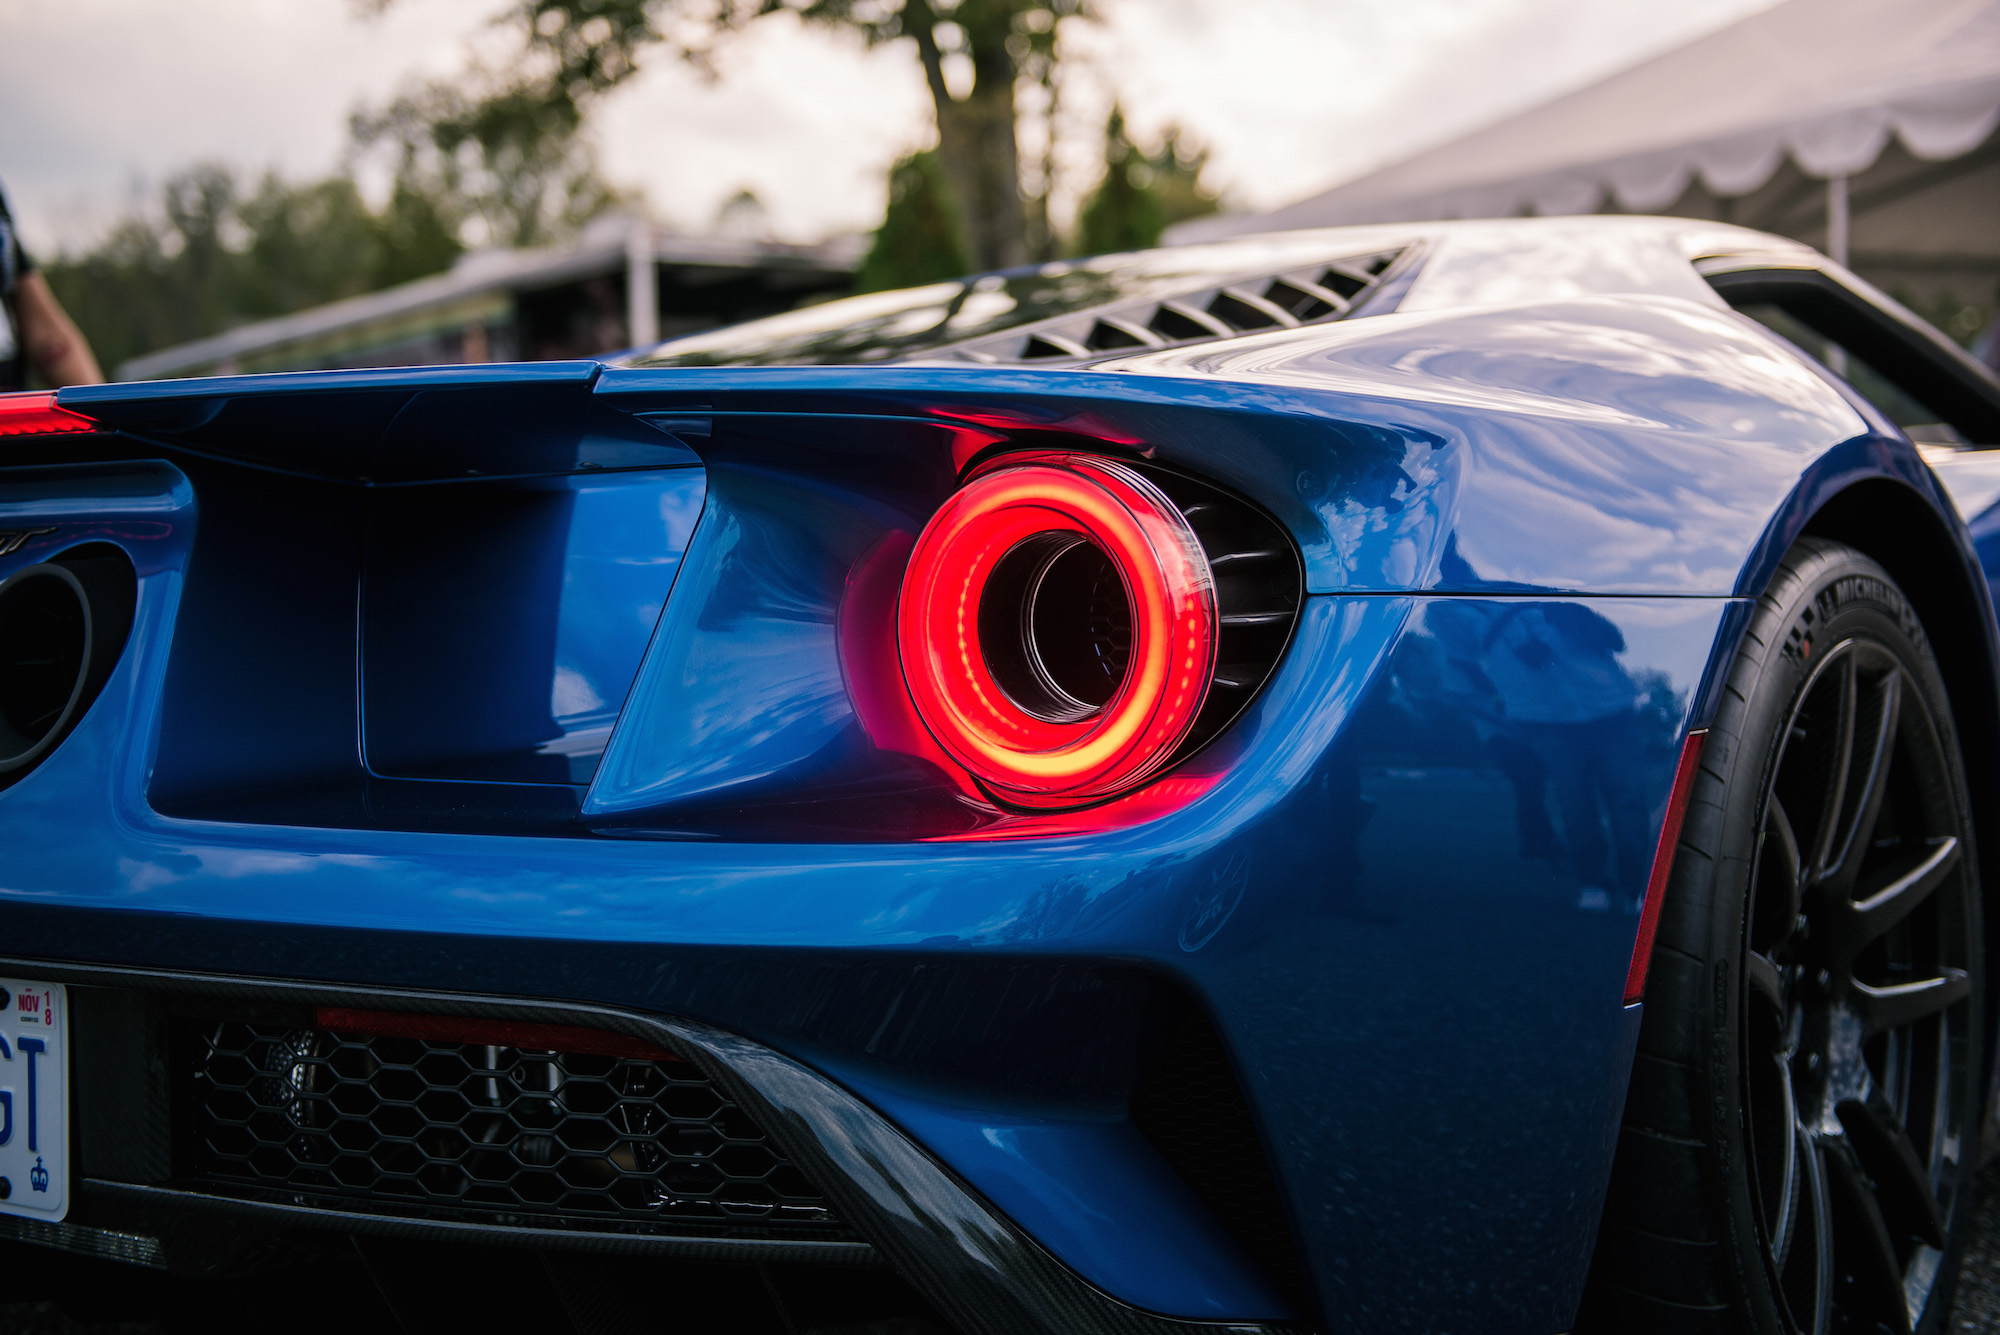 The Twin Turbocharged Ecoboost V To The Flying Buttress Design Of The B Pillar There Was Even An Iconic Ford Gt On Site For Us To Drool Over